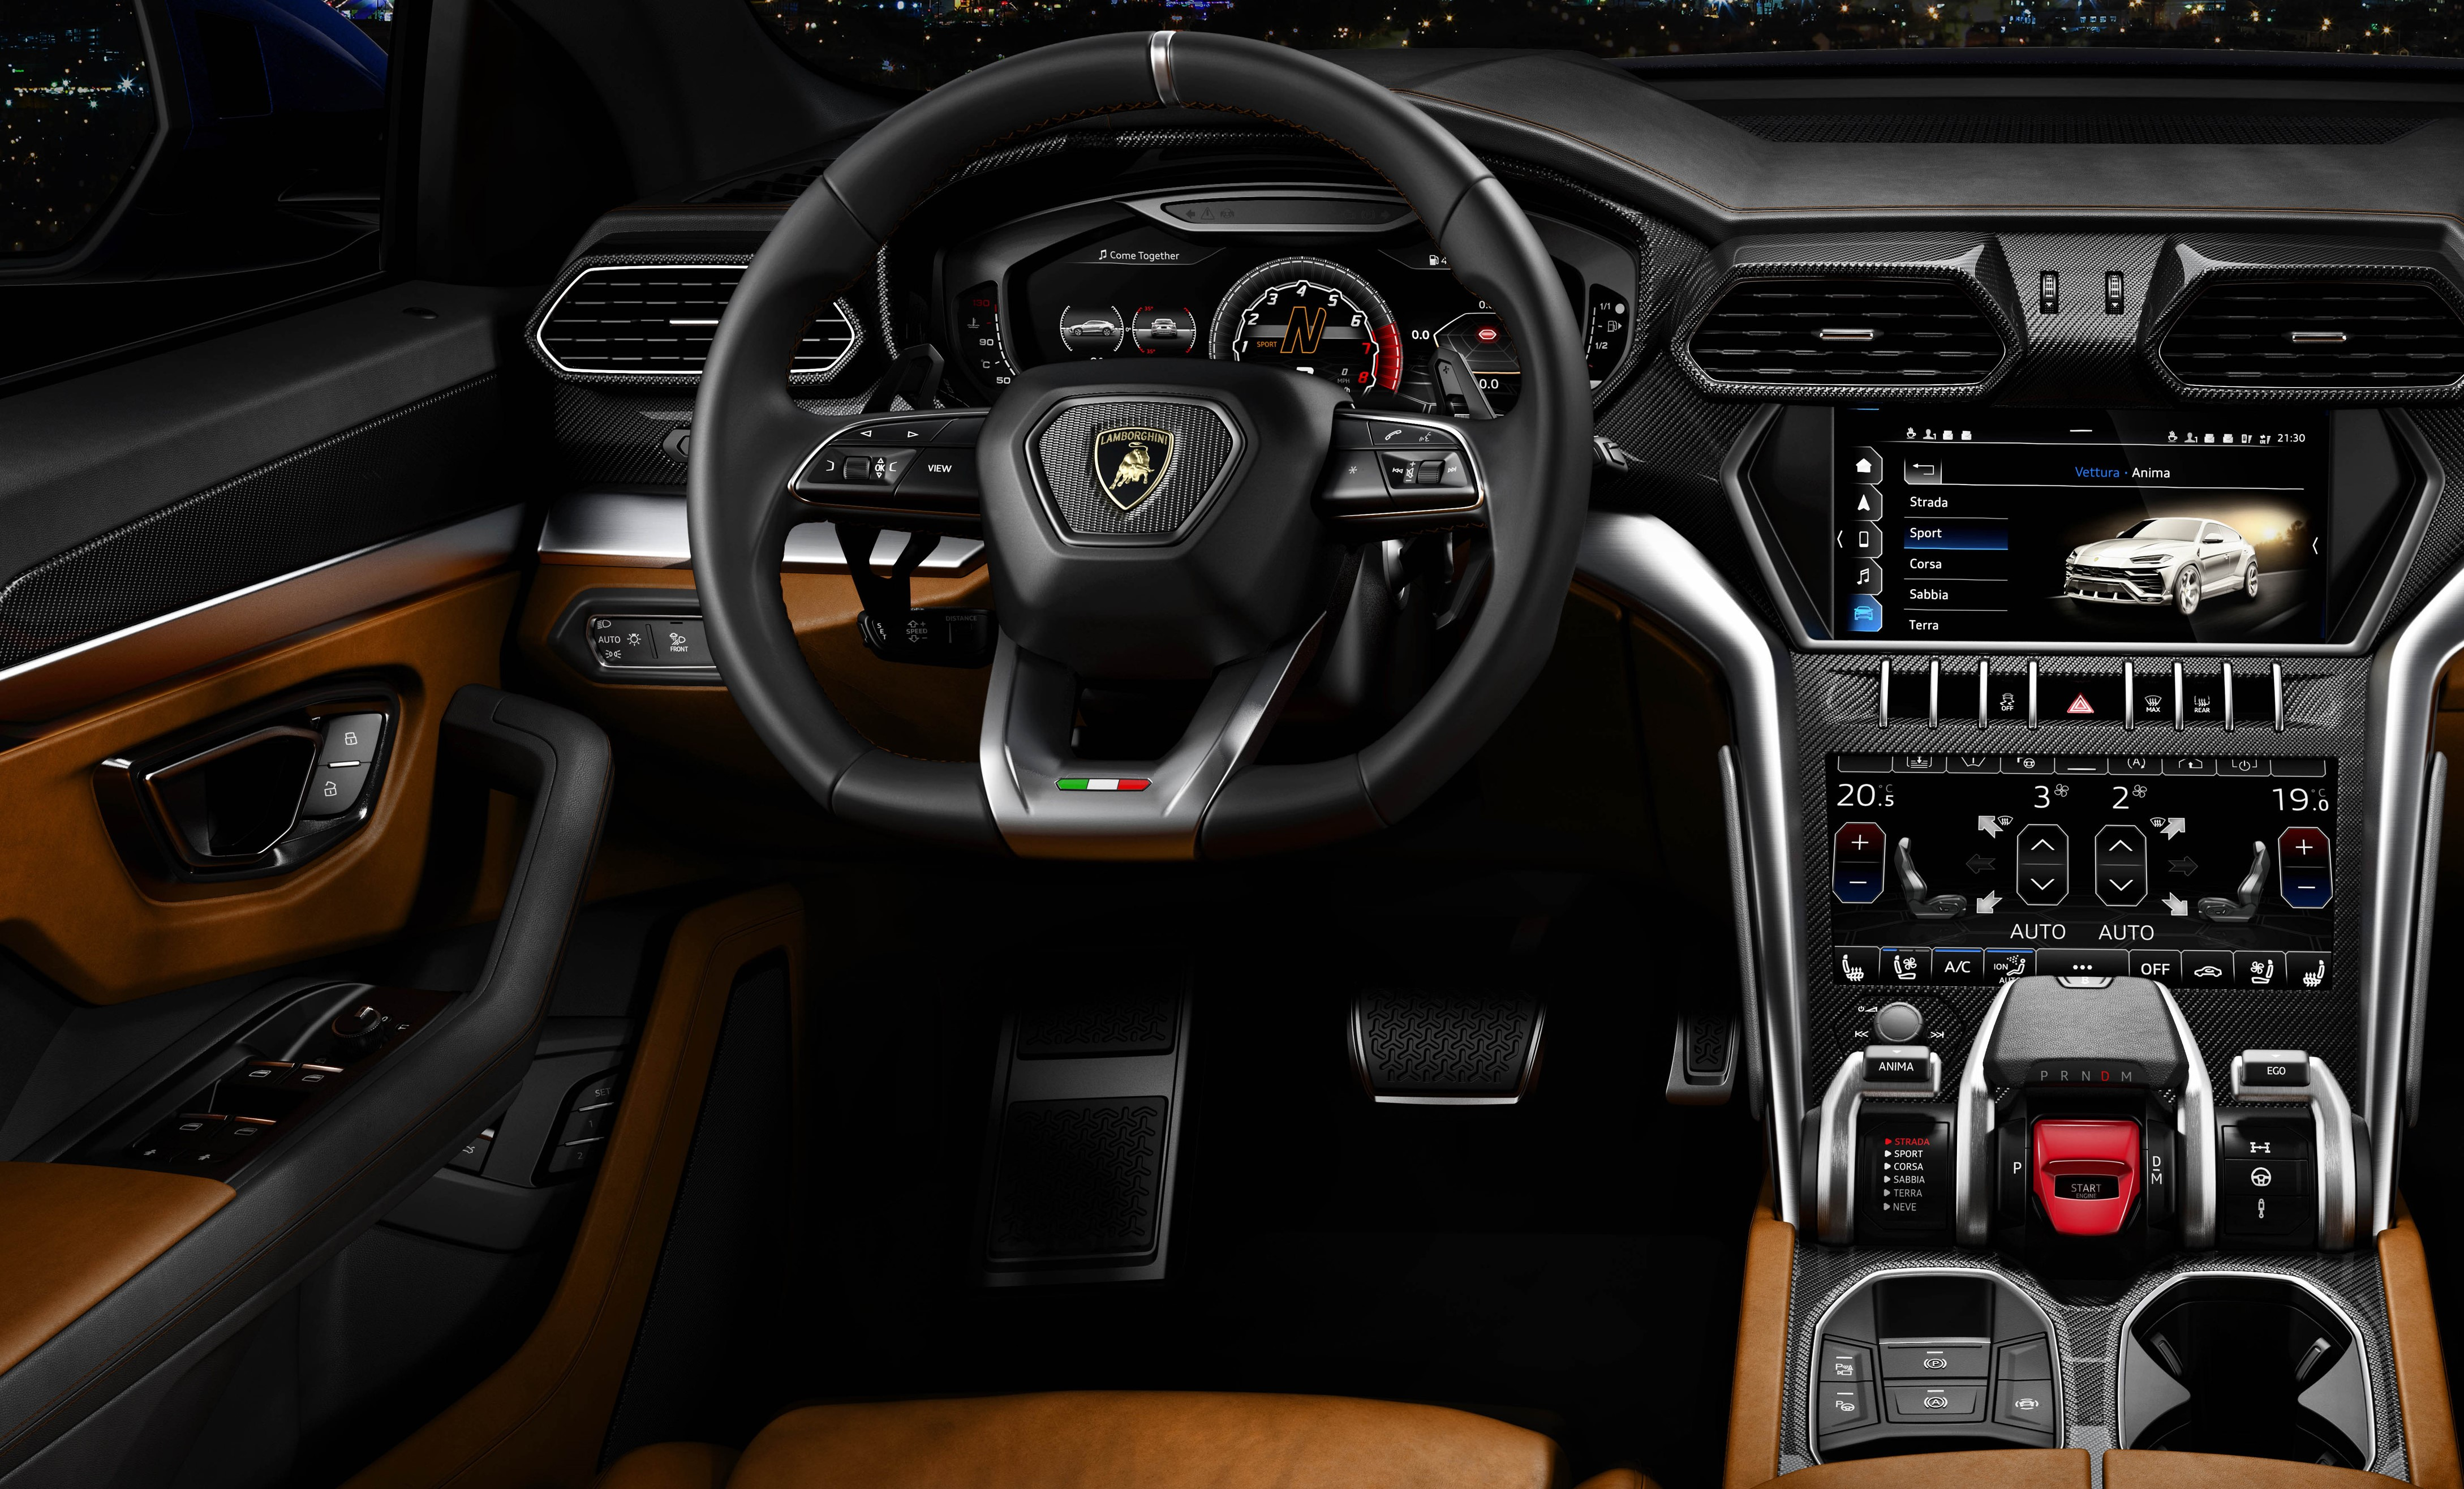 supercar milan urus utility boom the vehicle by sport price lamborghini joins suvs new suv first in super